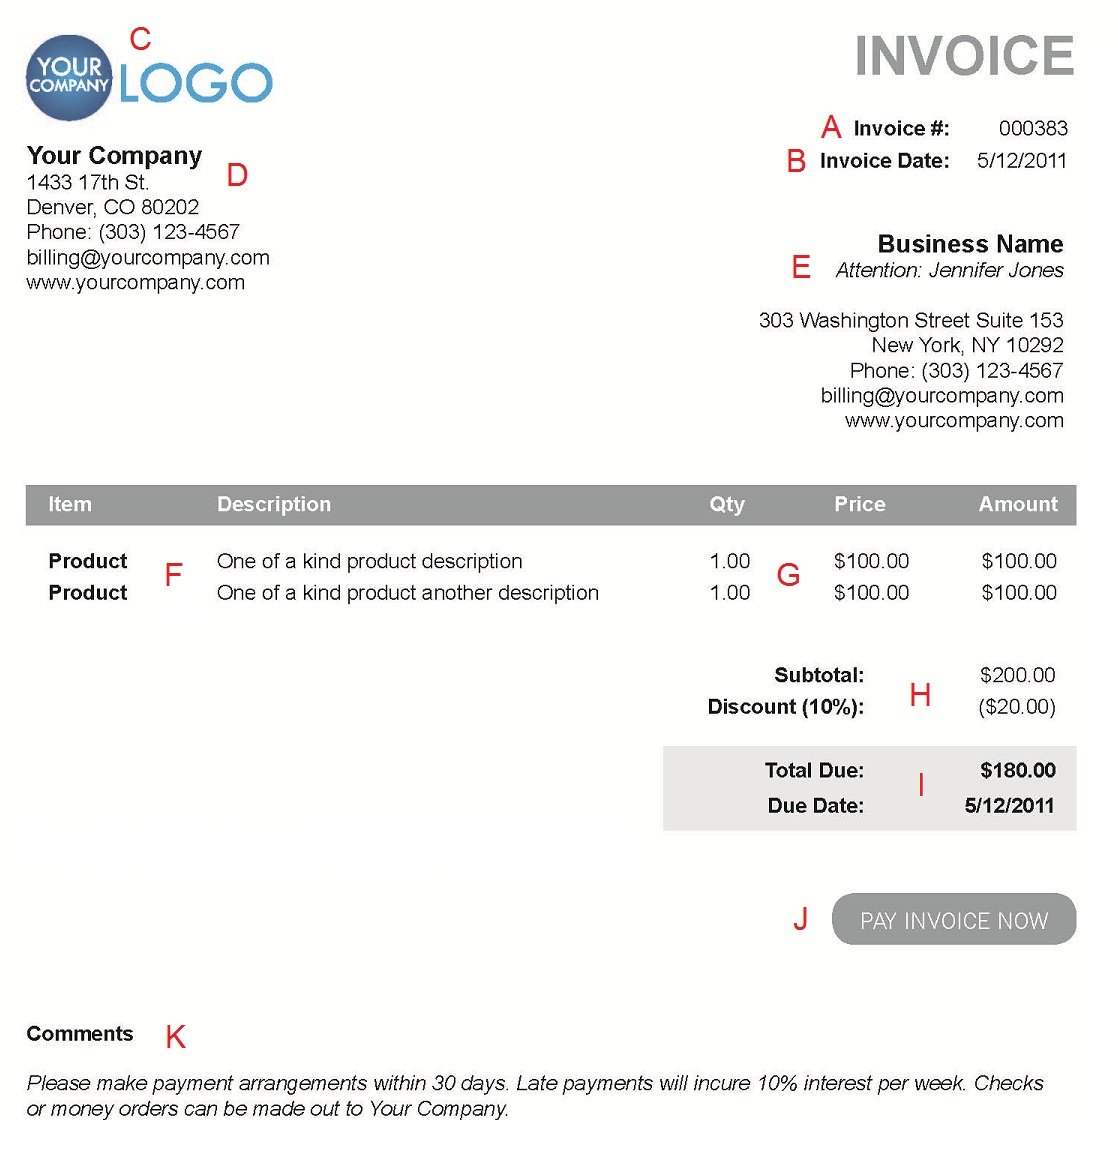 Occupyhistoryus  Surprising The  Different Sections Of An Electronic Payment Invoice With Inspiring A  With Amazing Proforma Invoice Templates Also Invoice Ipad In Addition Template For Invoice In Excel And Basic Tax Invoice Template As Well As Easy Invoicing Software Free Additionally Rbs Invoice Finance Limited From Paysimplecom With Occupyhistoryus  Inspiring The  Different Sections Of An Electronic Payment Invoice With Amazing A  And Surprising Proforma Invoice Templates Also Invoice Ipad In Addition Template For Invoice In Excel From Paysimplecom